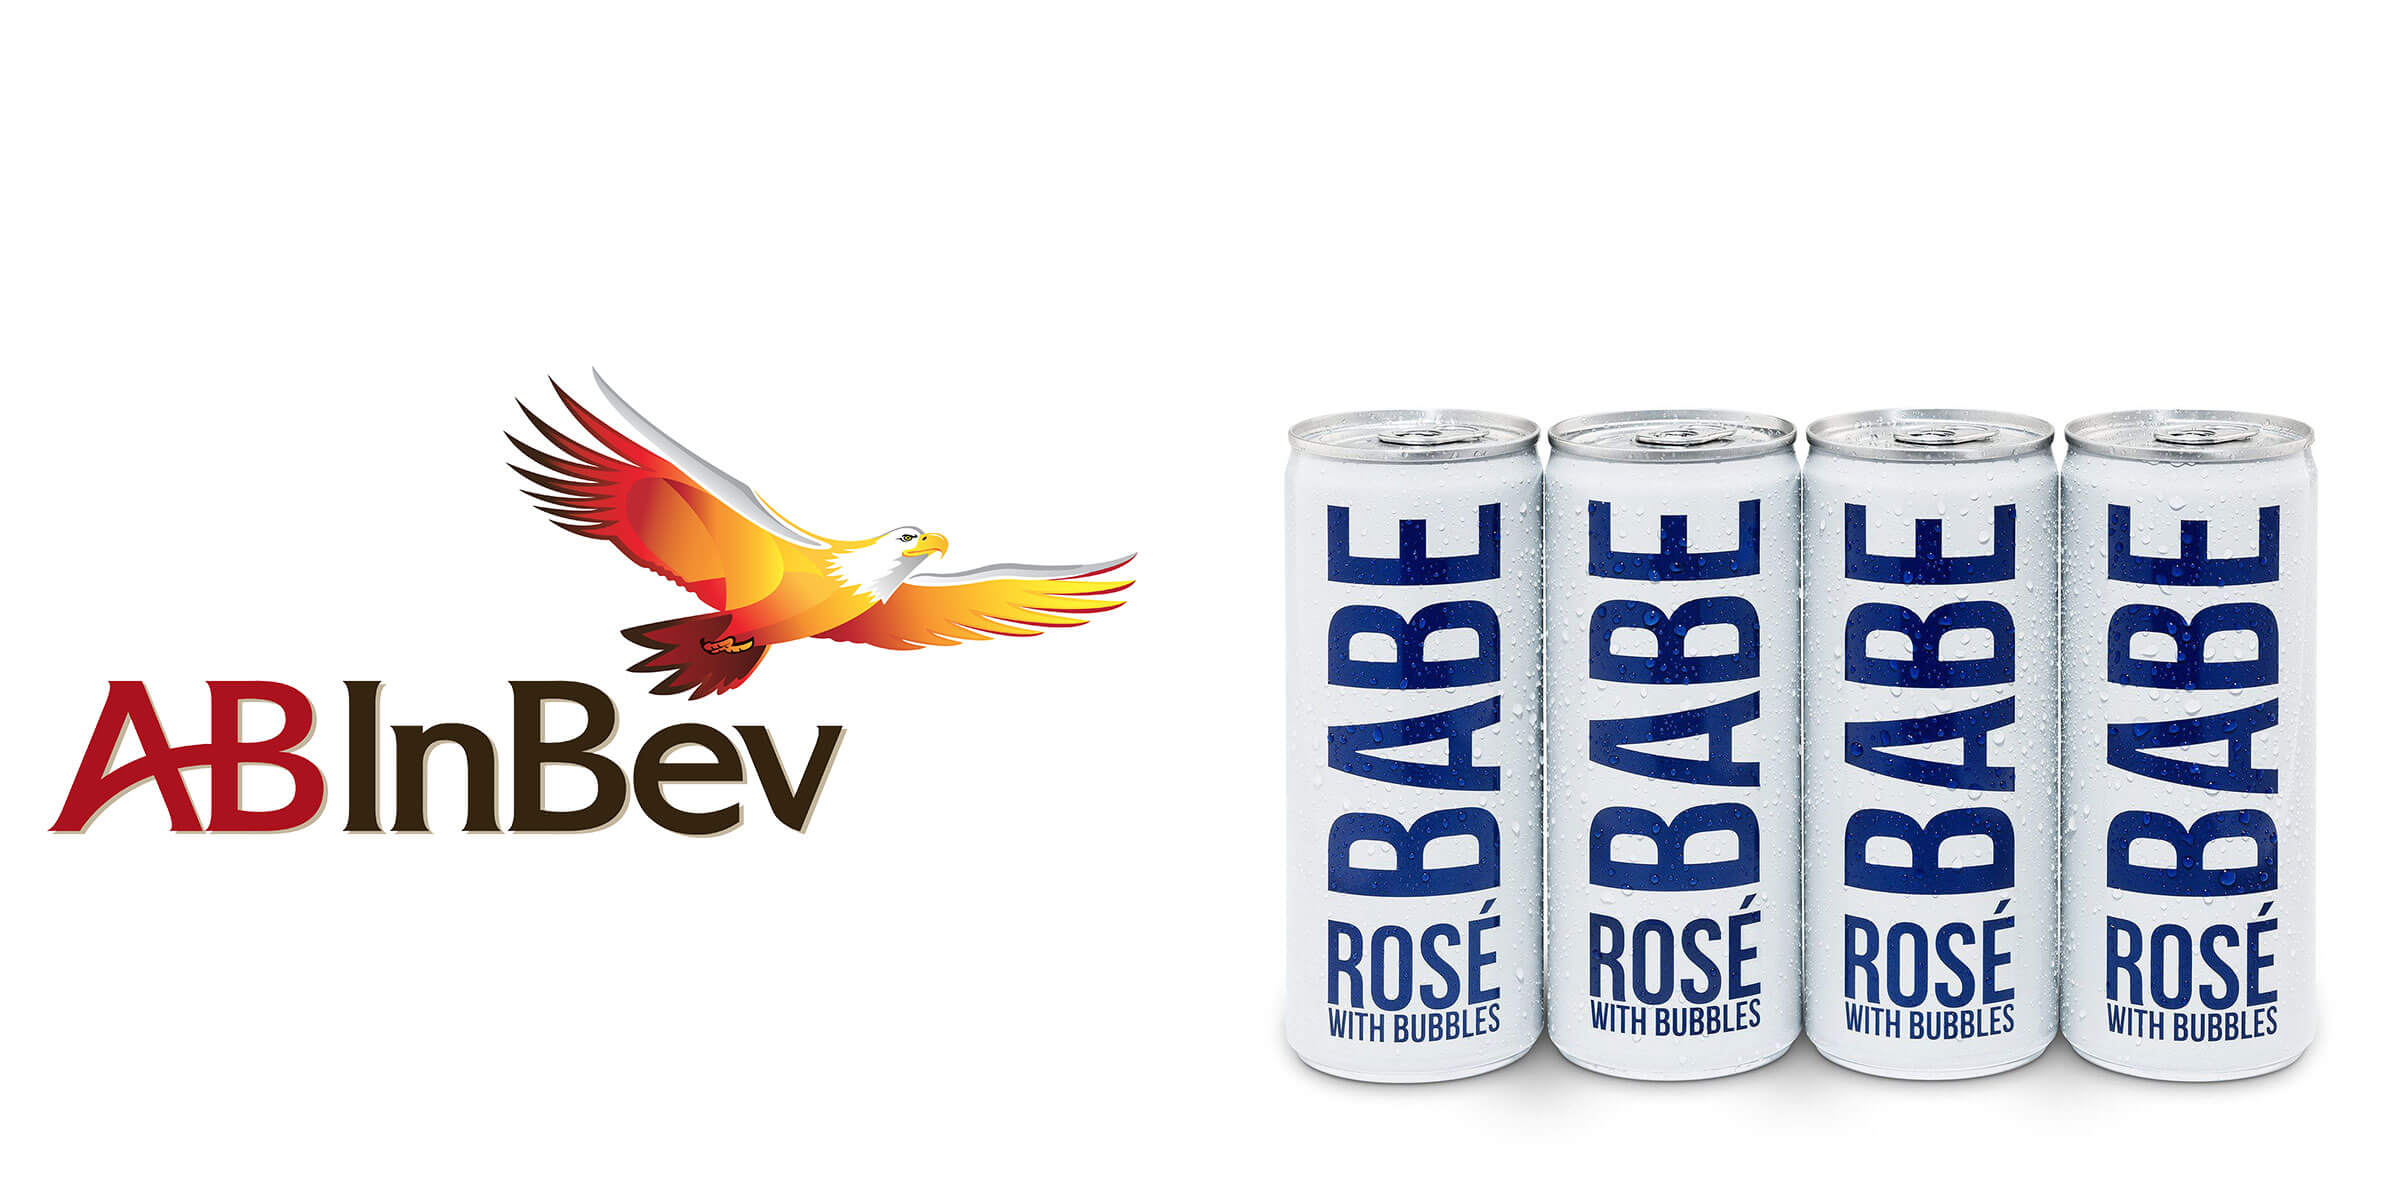 """Anheuser-Busch InBev is expanding into non-beers, acquiring the remaining stake in Swish Beverages, which makes the popular line of """"Babe"""" canned wines."""